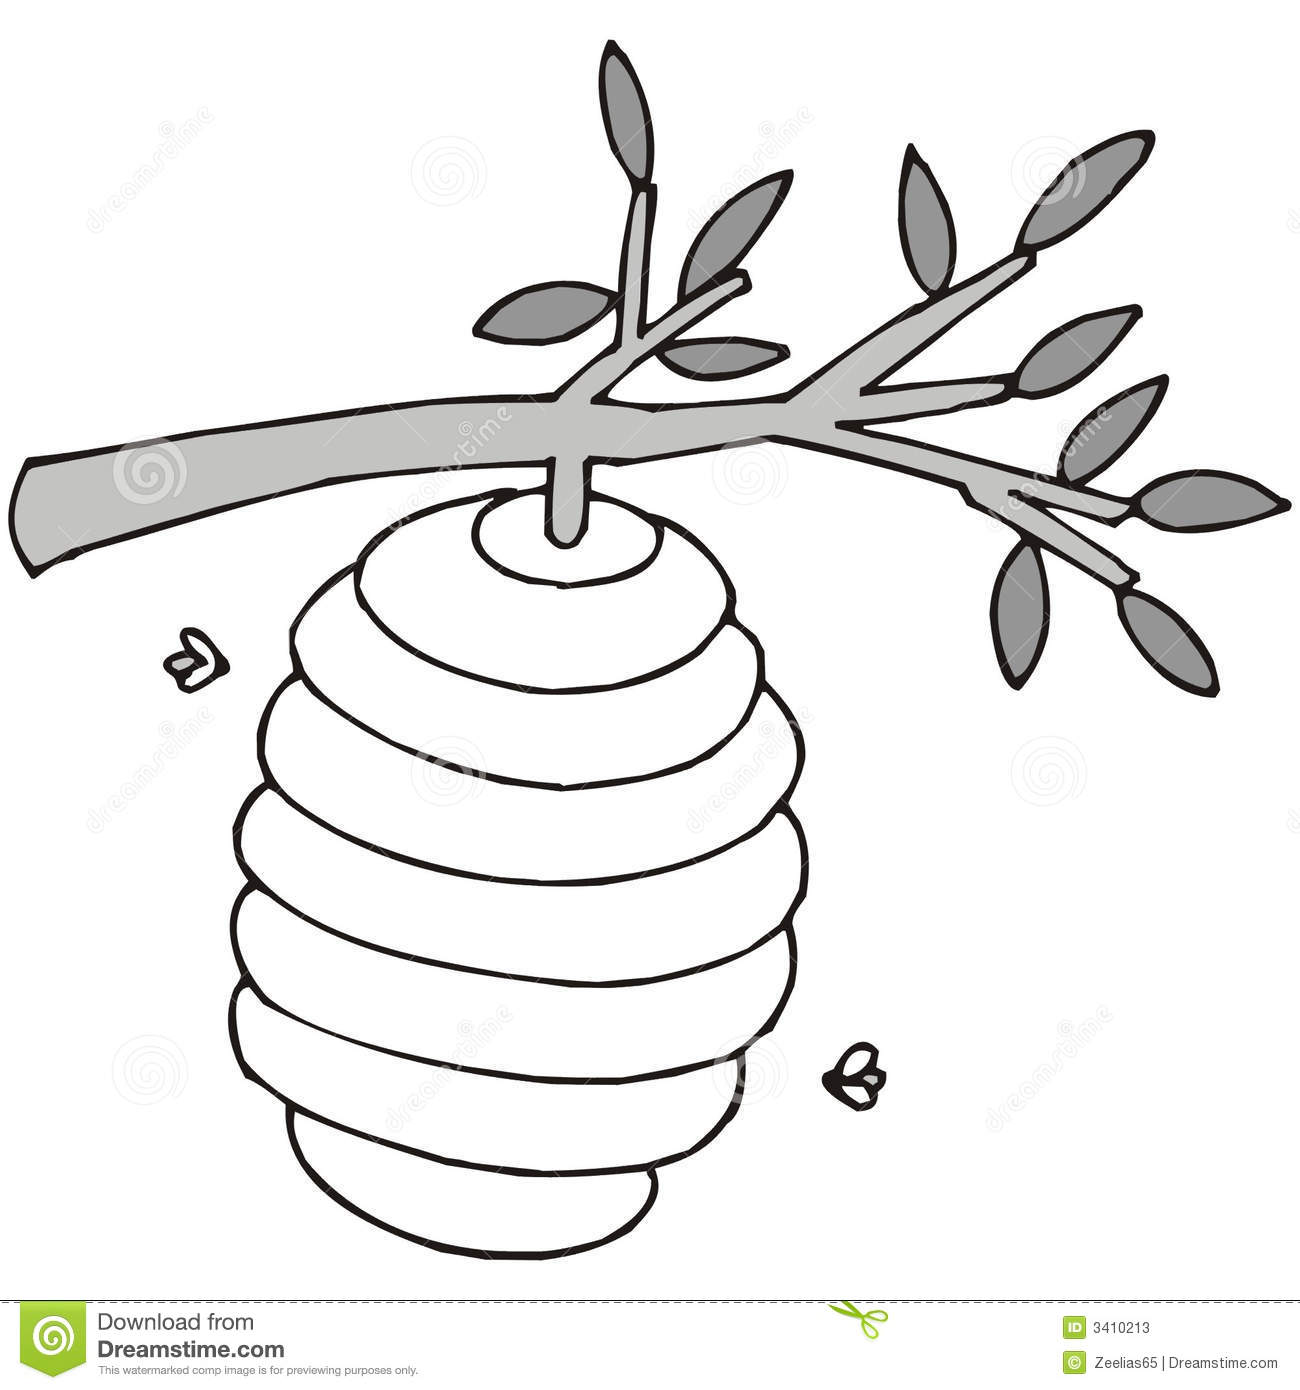 Art illustration in black and white: a beehive.